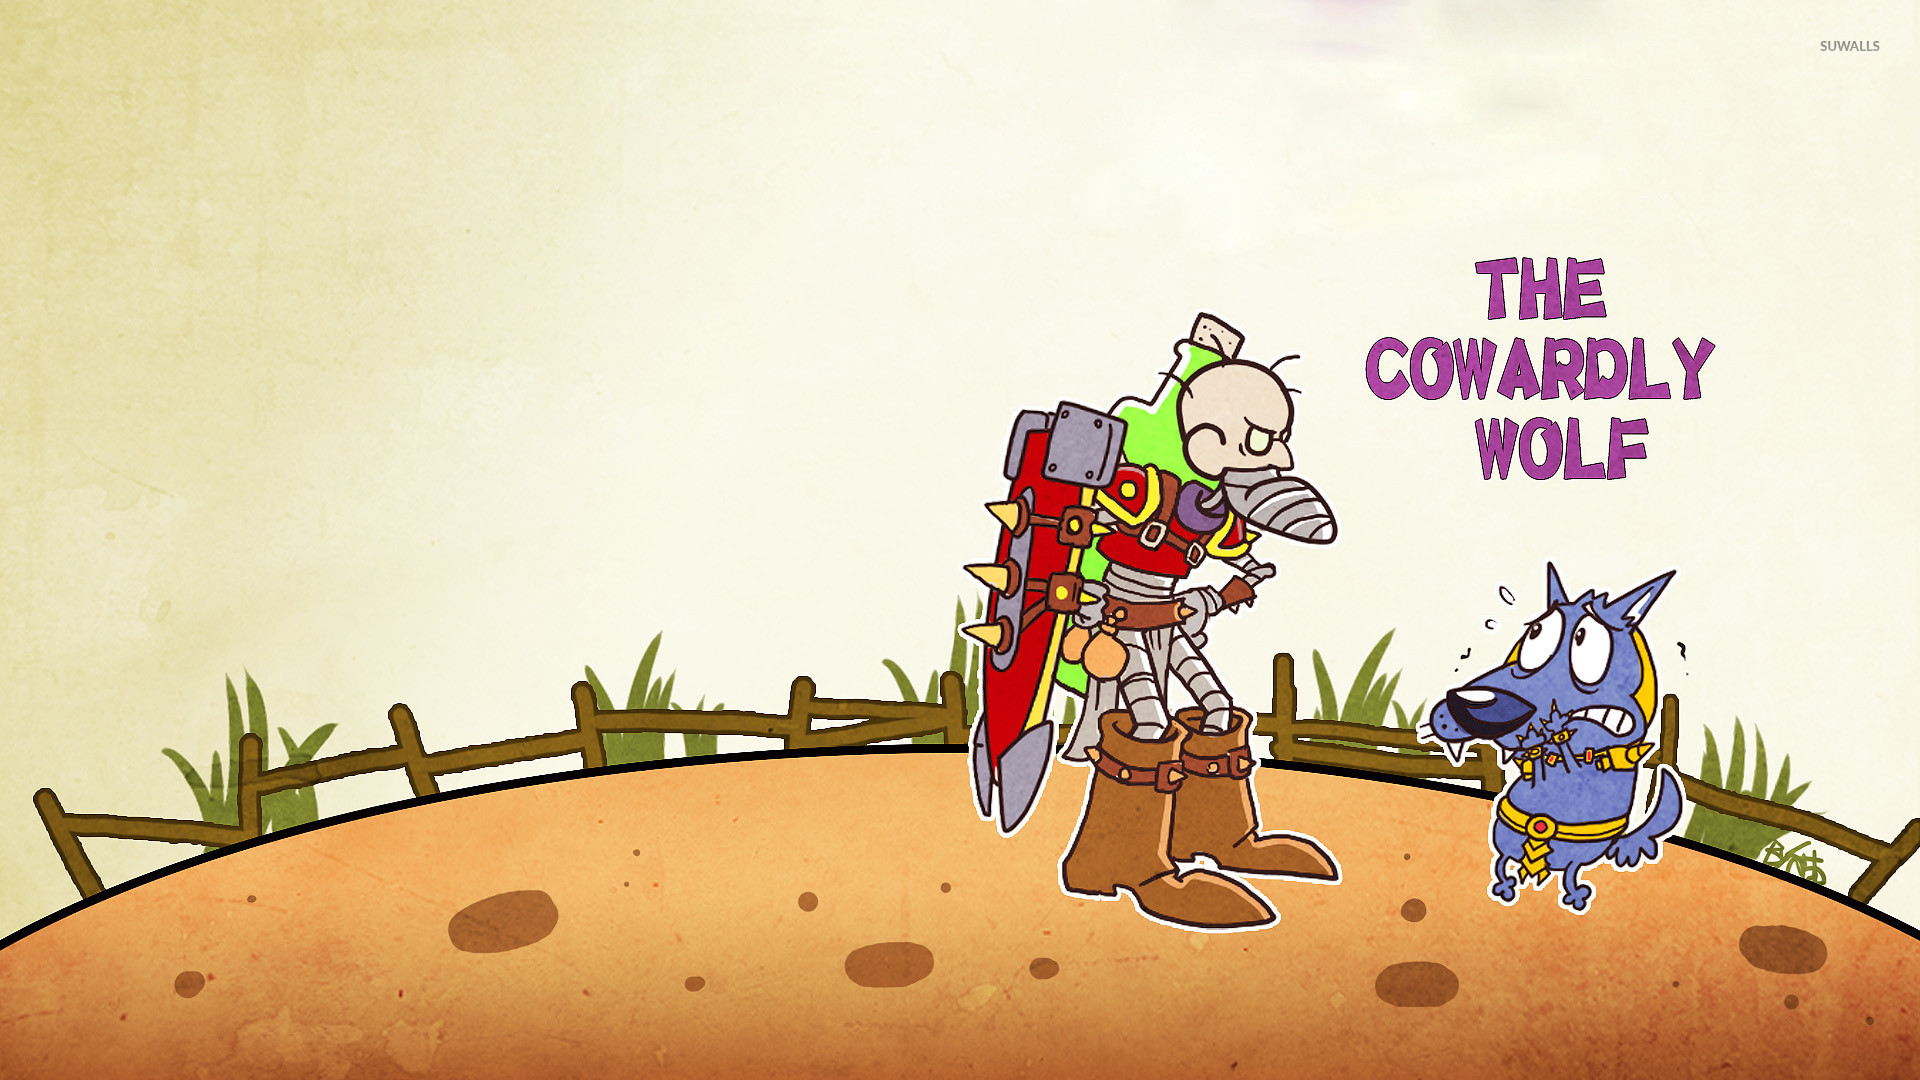 Courage and Eustace from Courage the Cowardly Wolf wallpaper